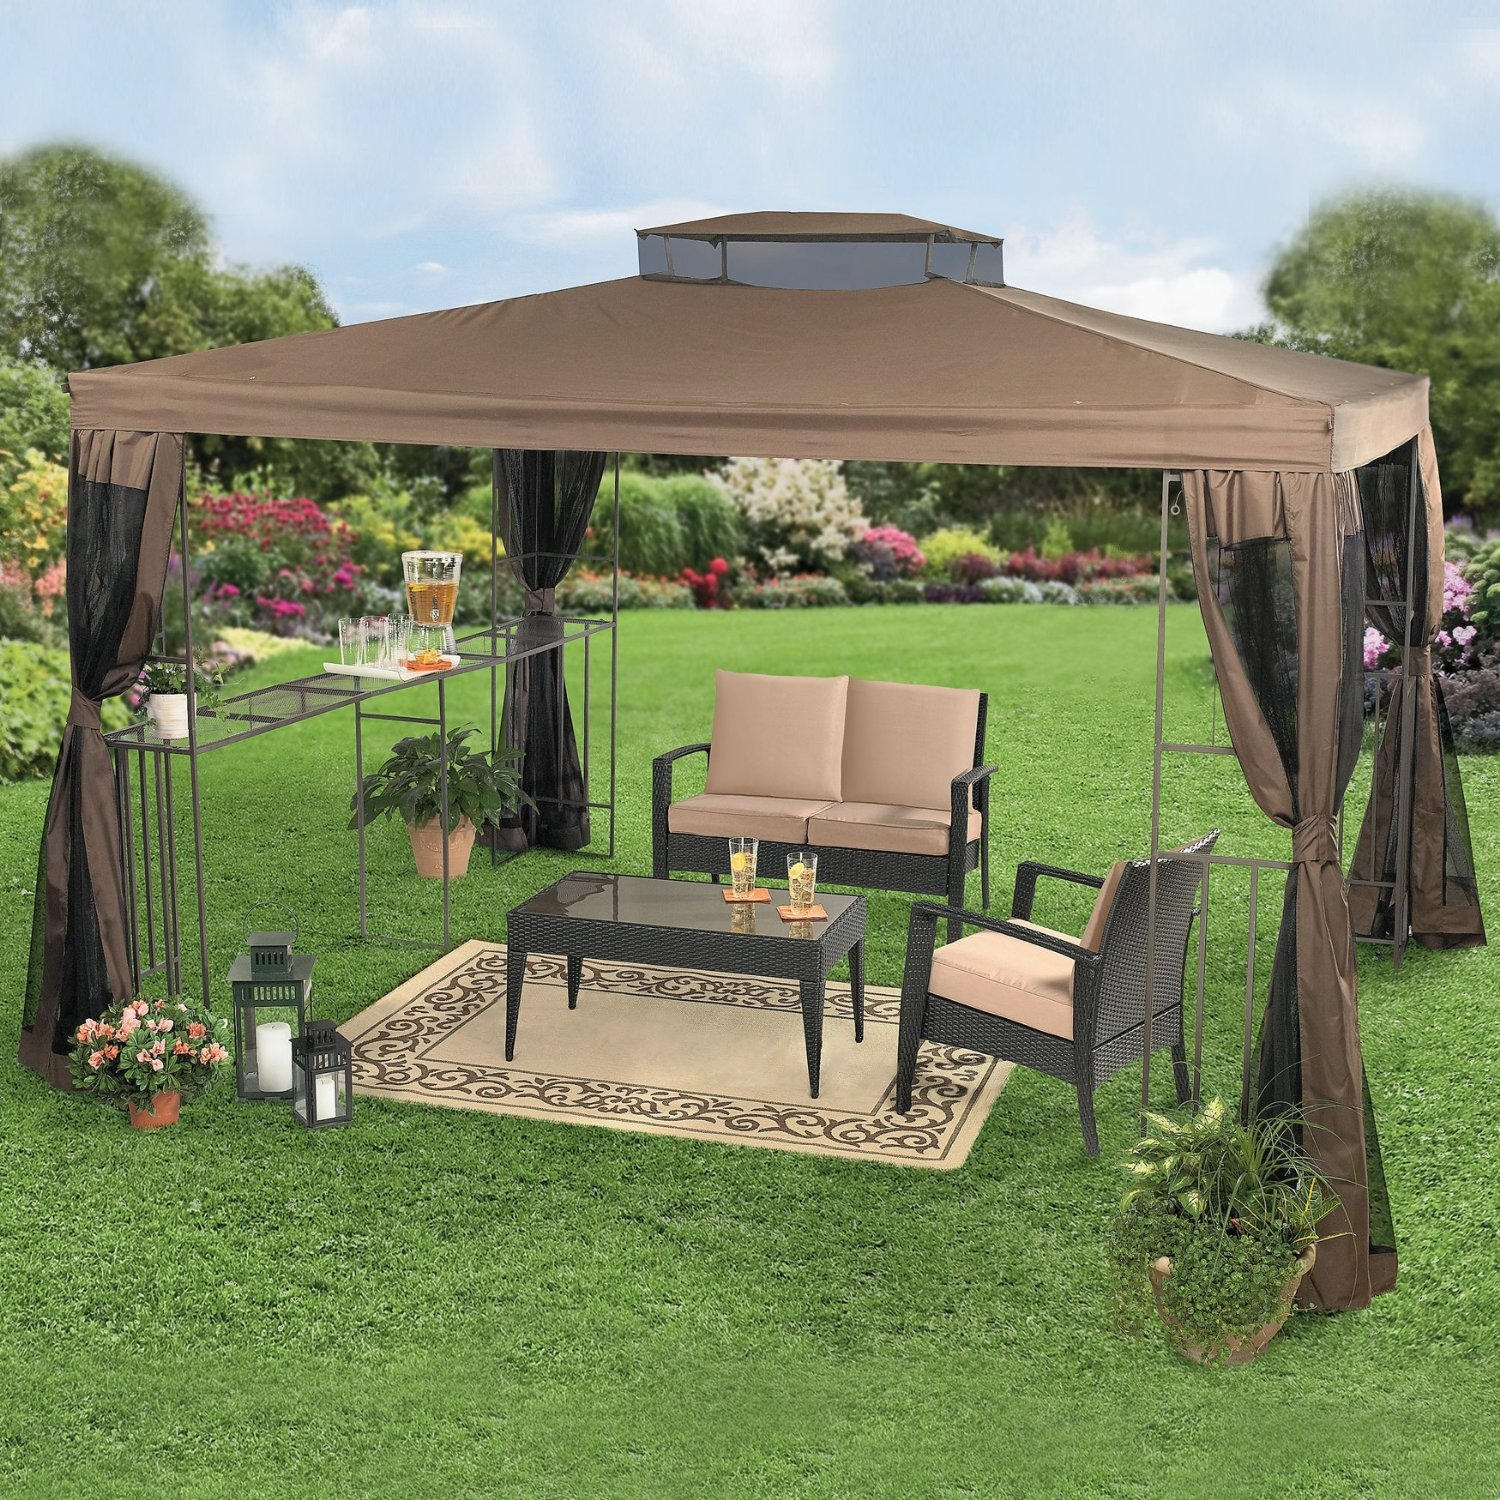 78 12x12 metal gazebo yardistry 12039 x 12039 wood